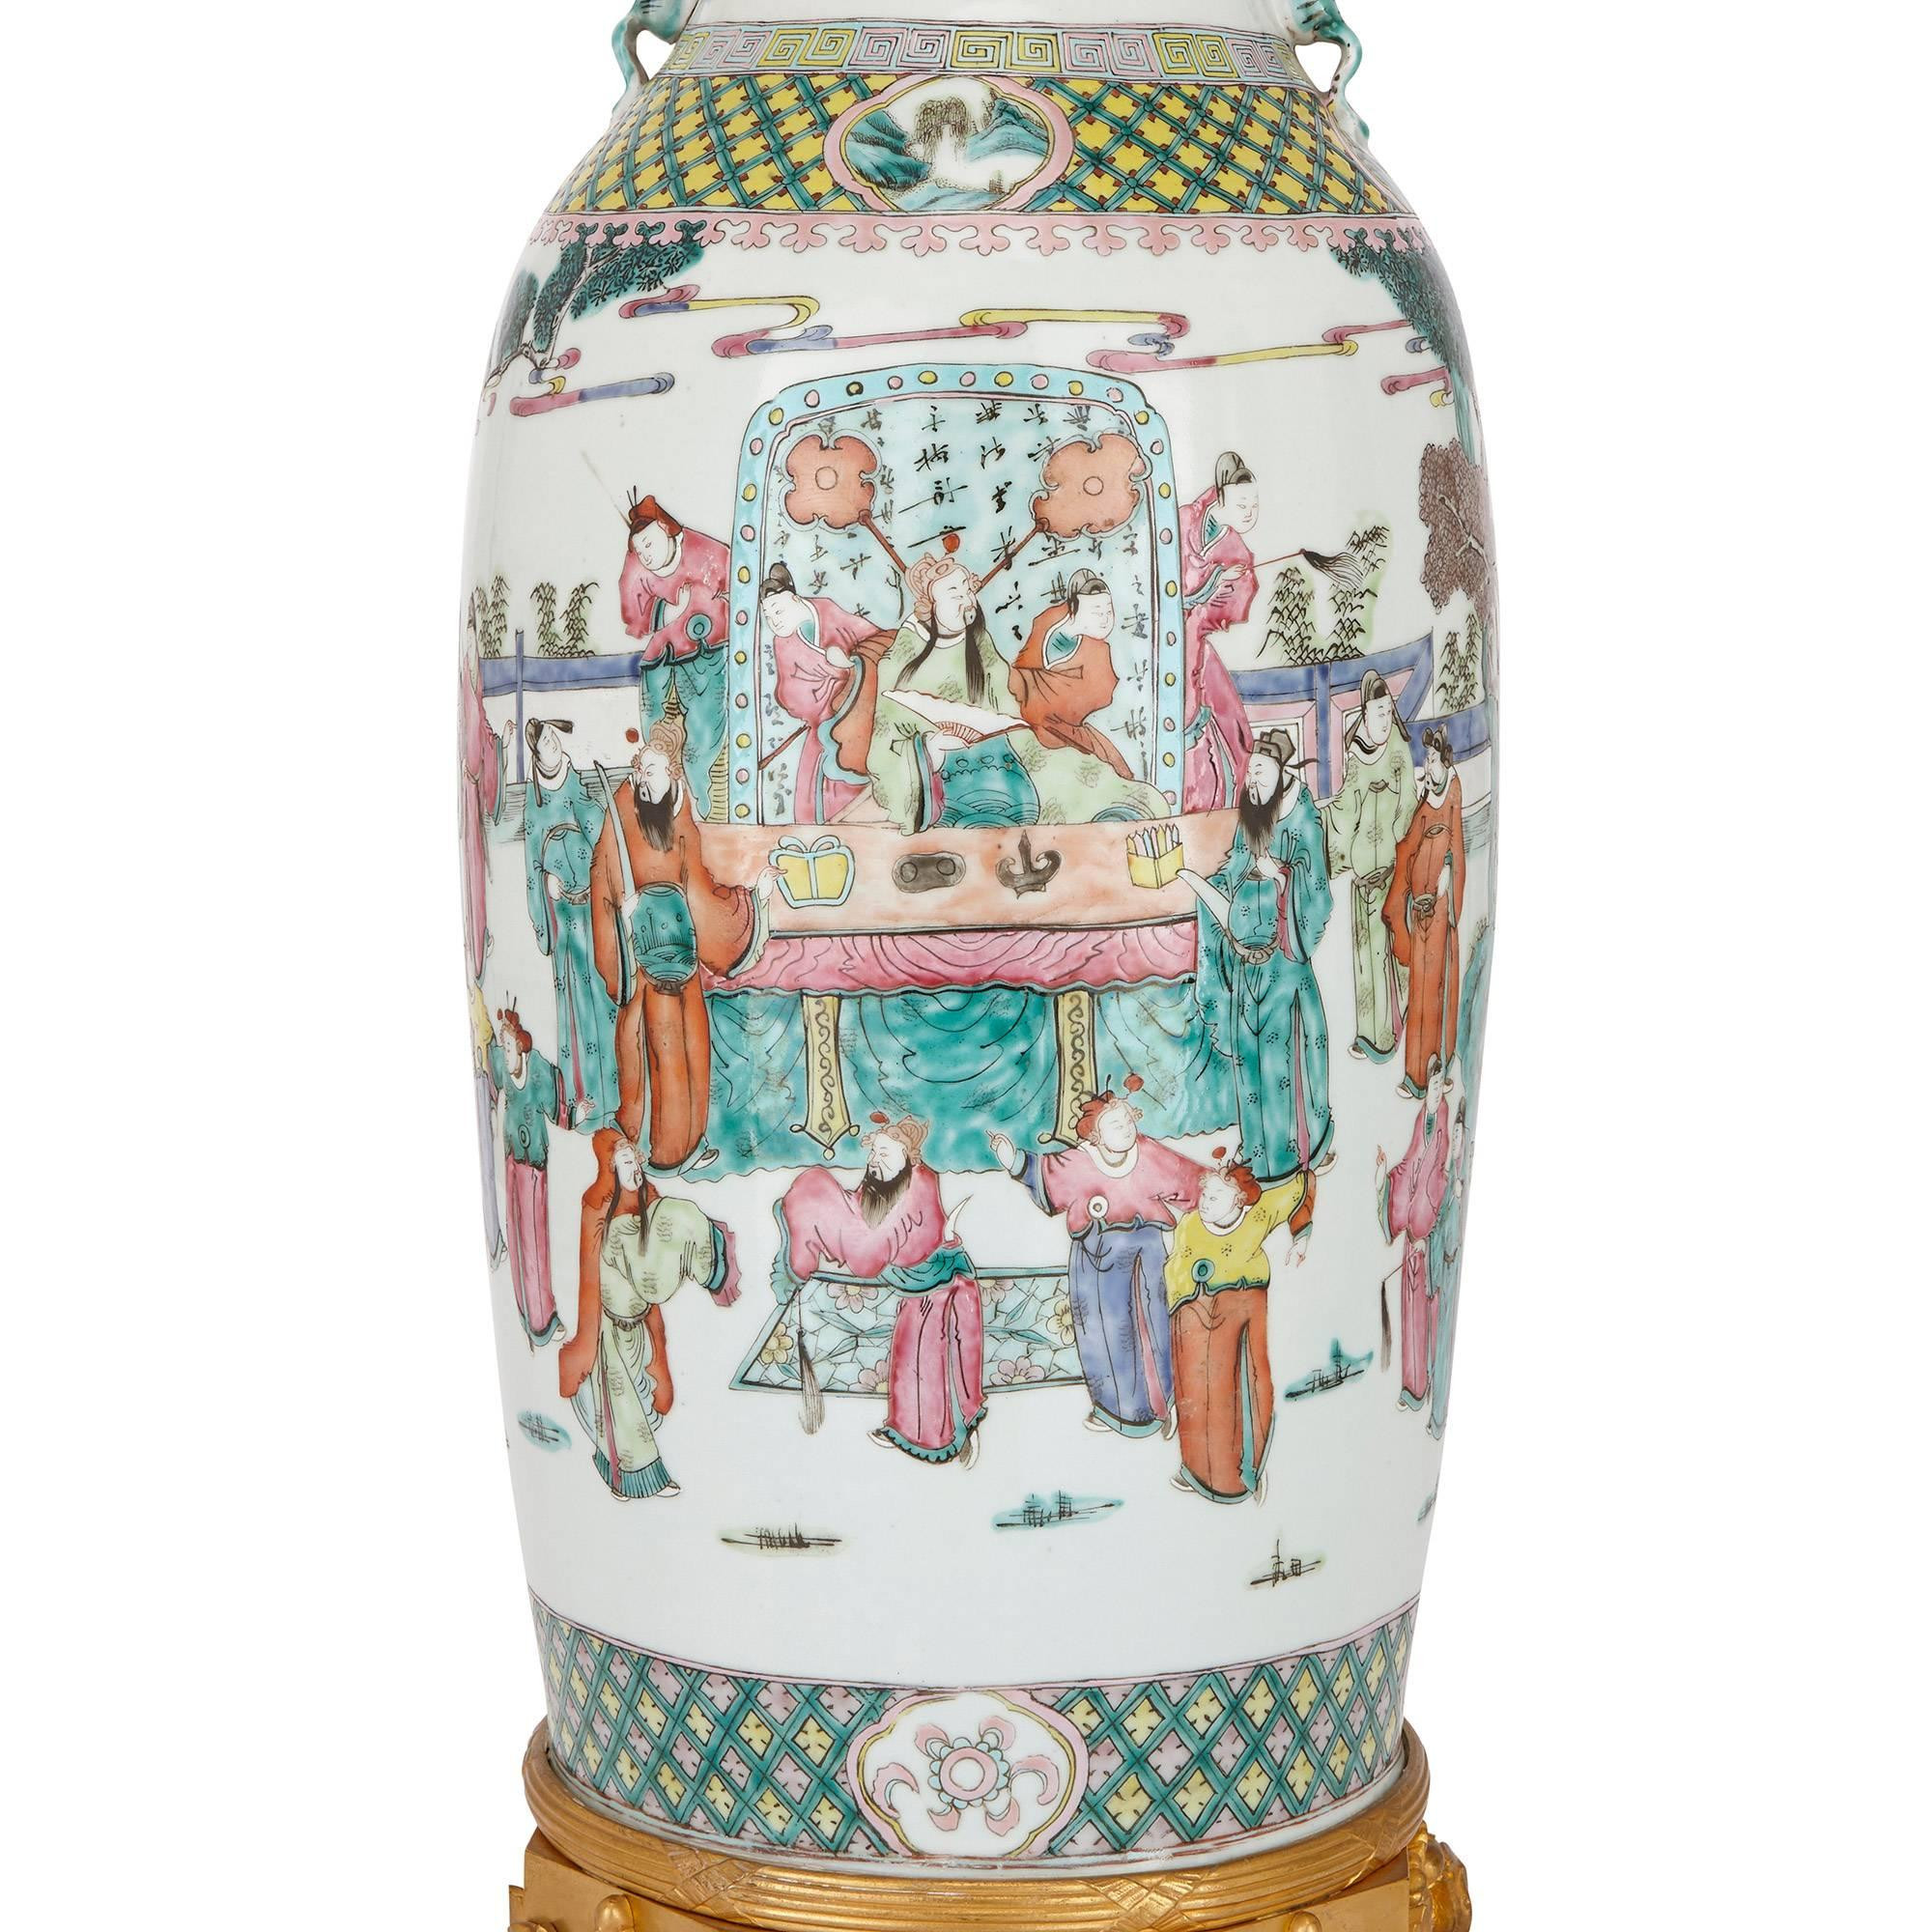 famille rose porcelain vase of pair of chinese antique canton famille rose porcelain vases for sale inside pair of chinese antique canton famille rose porcelain vases for sale at 1stdibs